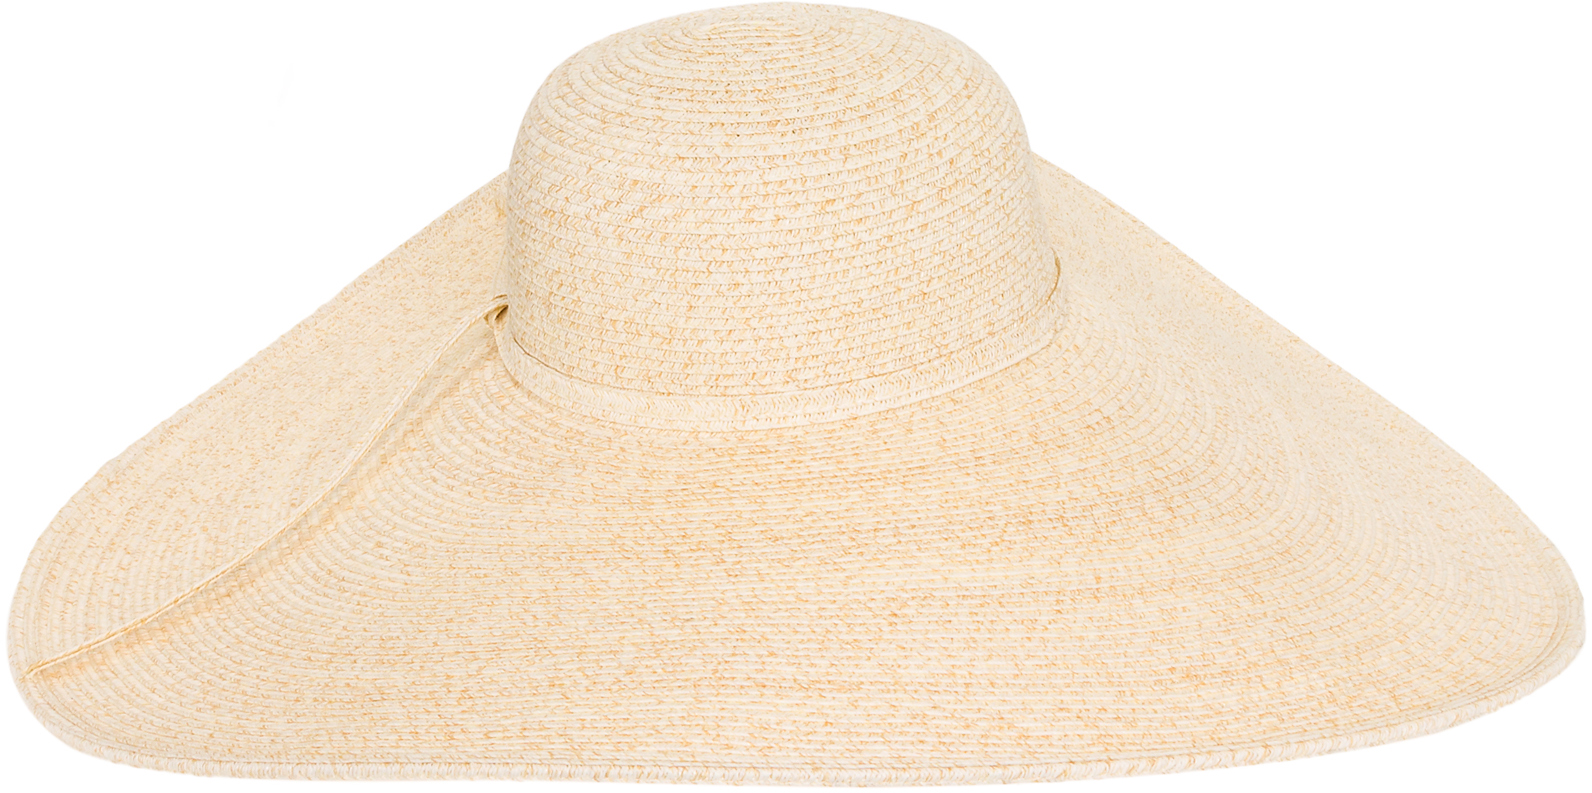 549193a2ee9bc3 Mens Extra Wide Brim Straw Hats